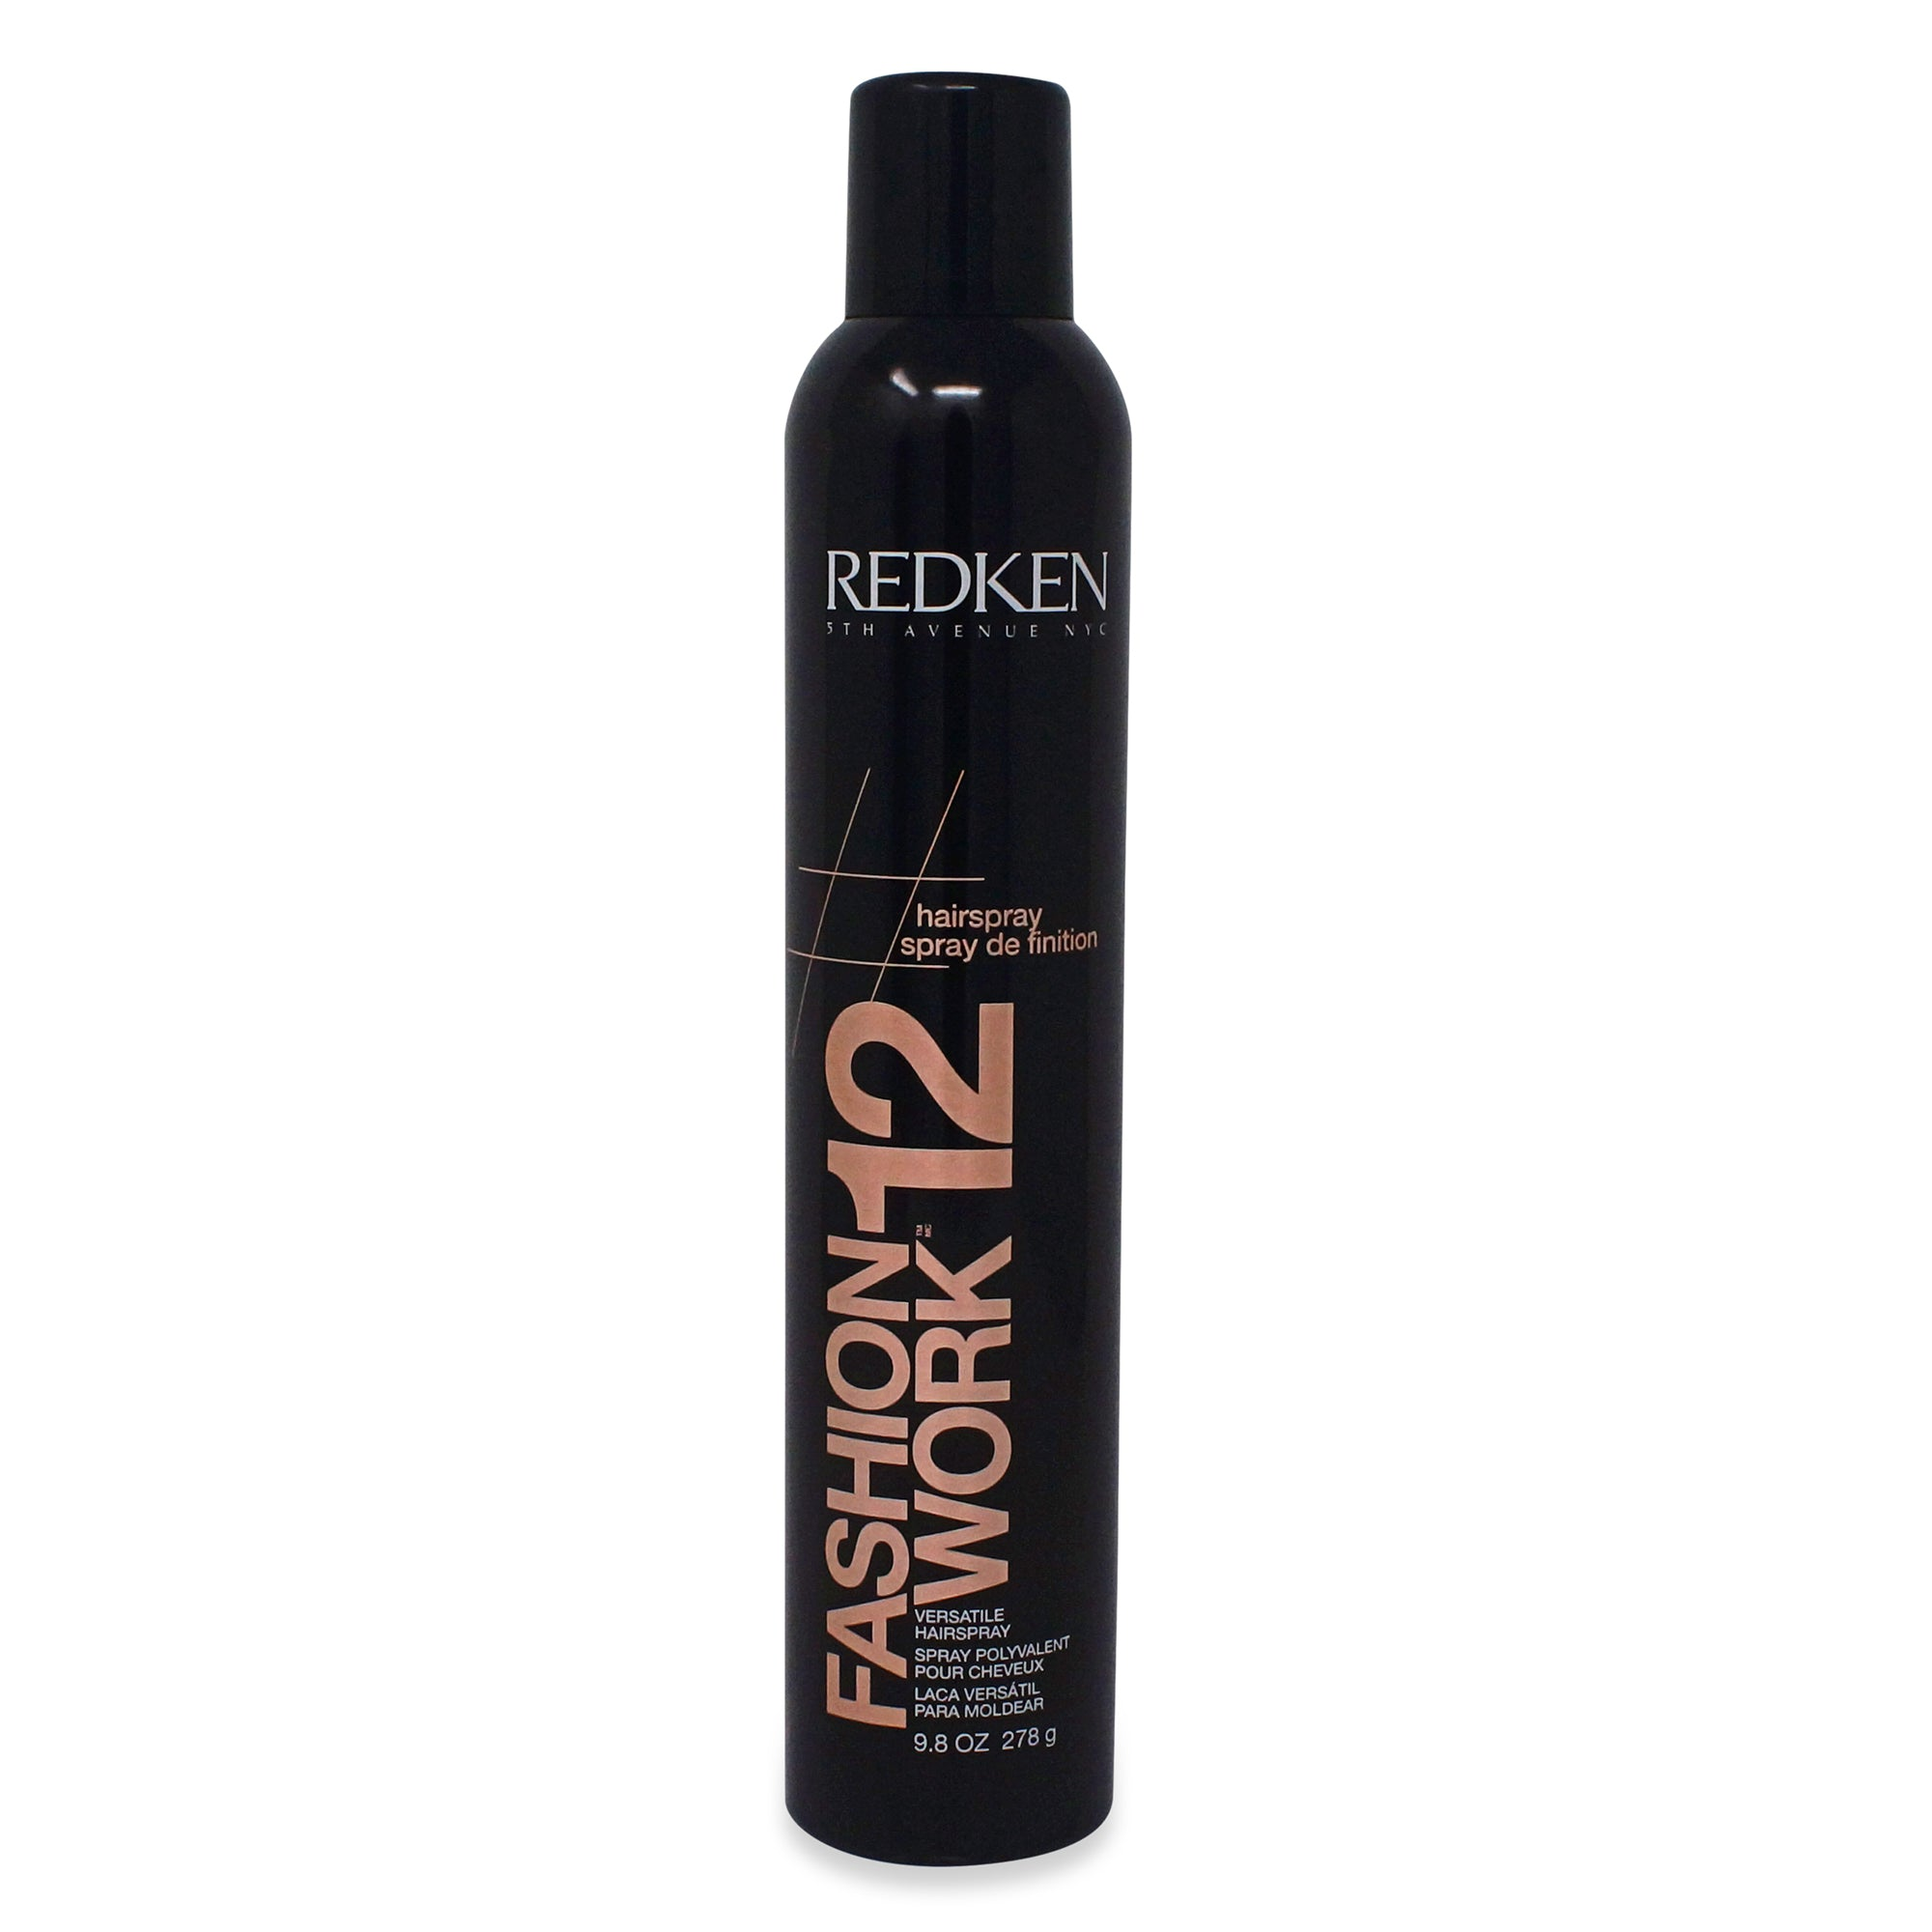 REDKEN ~ FASHION WORK 12 VERSATILE WORKING SPRAY ~ 9.8OZ